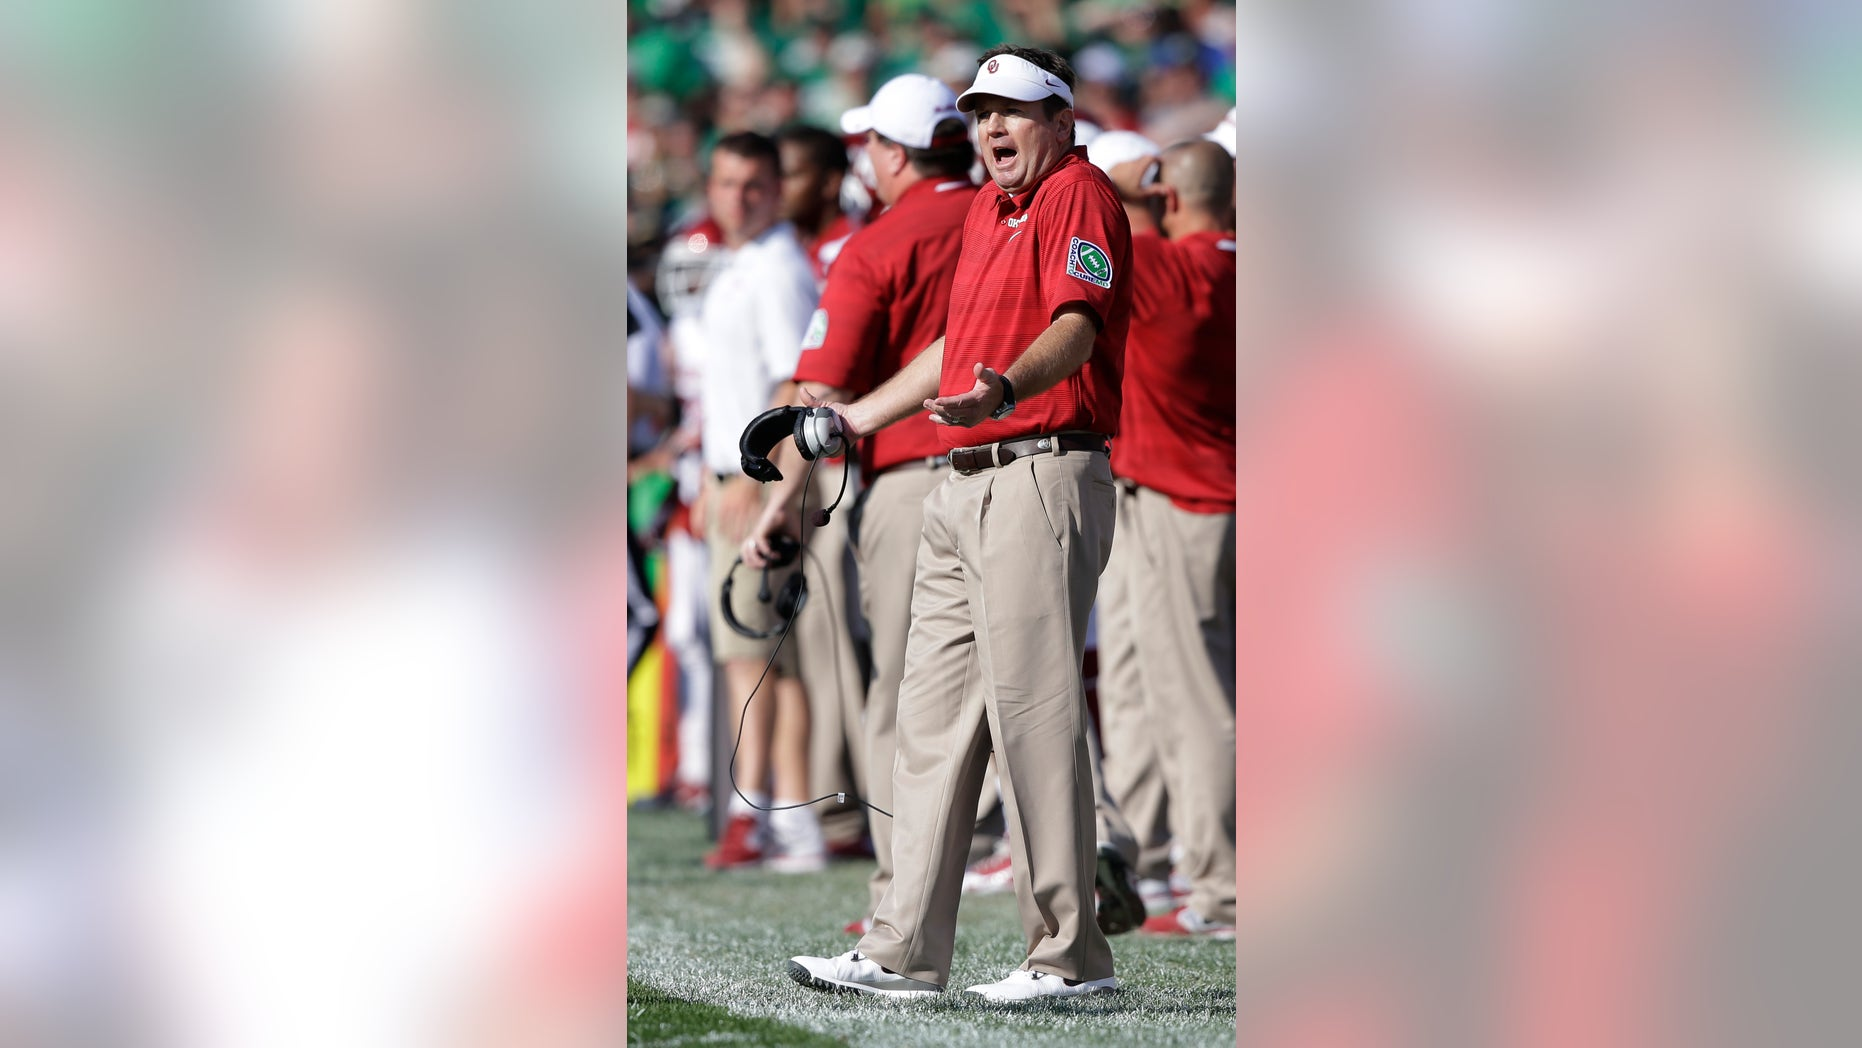 Oklahoma head coach Bob Stoops questions a call during the first half of an NCAA college football game against Notre Dame, Saturday, Sept. 28, 2013, in South Bend, Ind. (AP Photo/Darron Cummings)